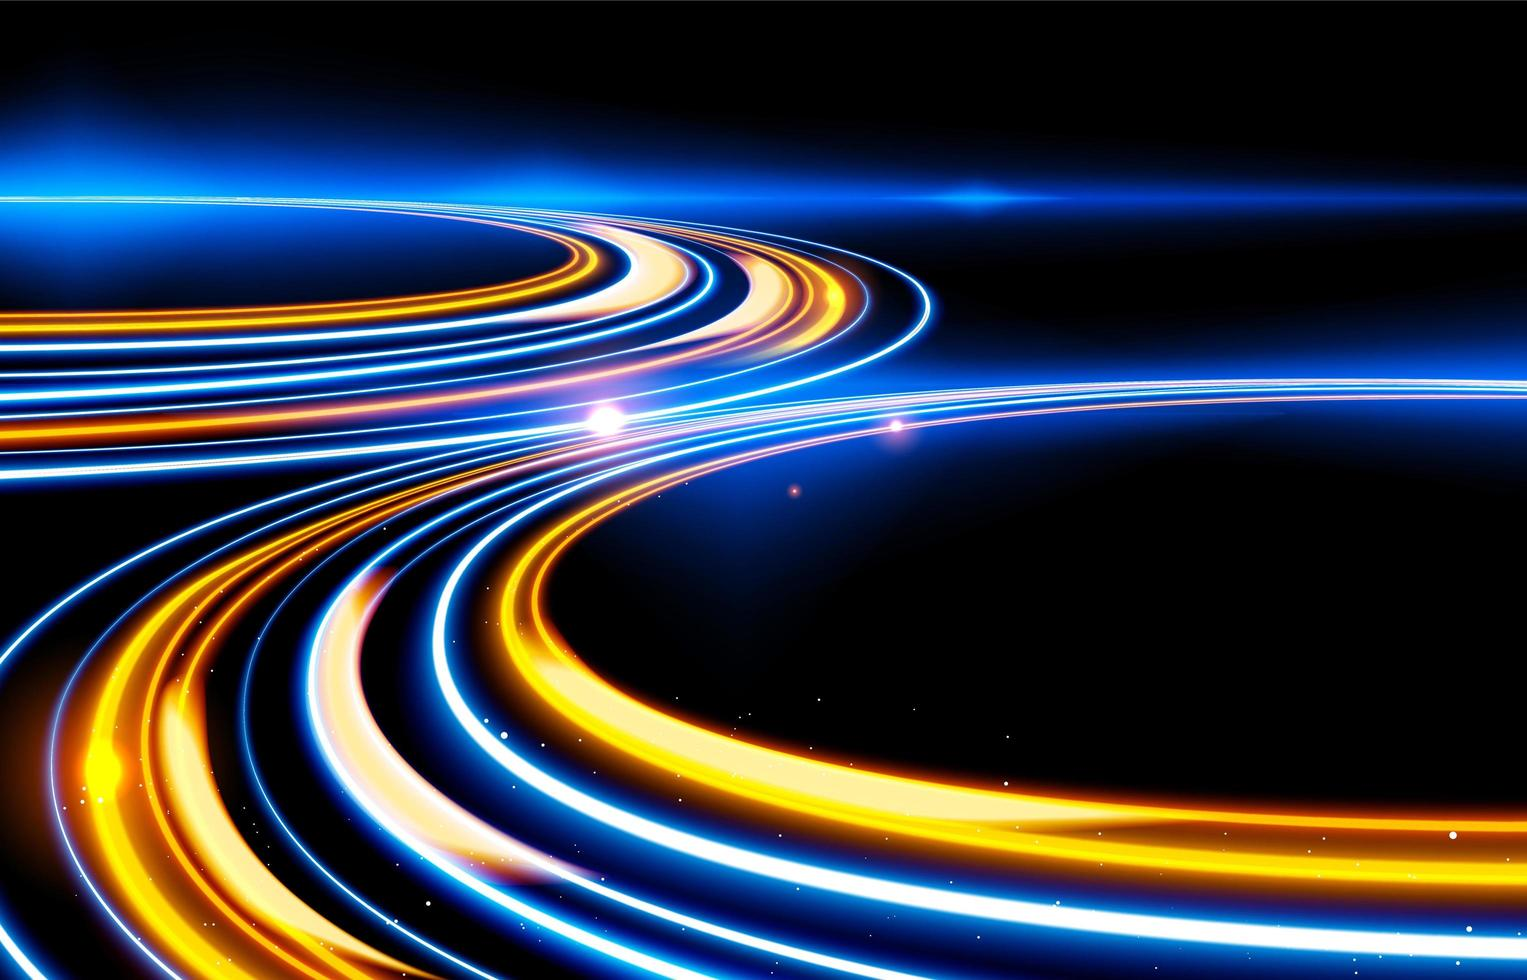 Slow Shutter Light Trails Effect  Design vector